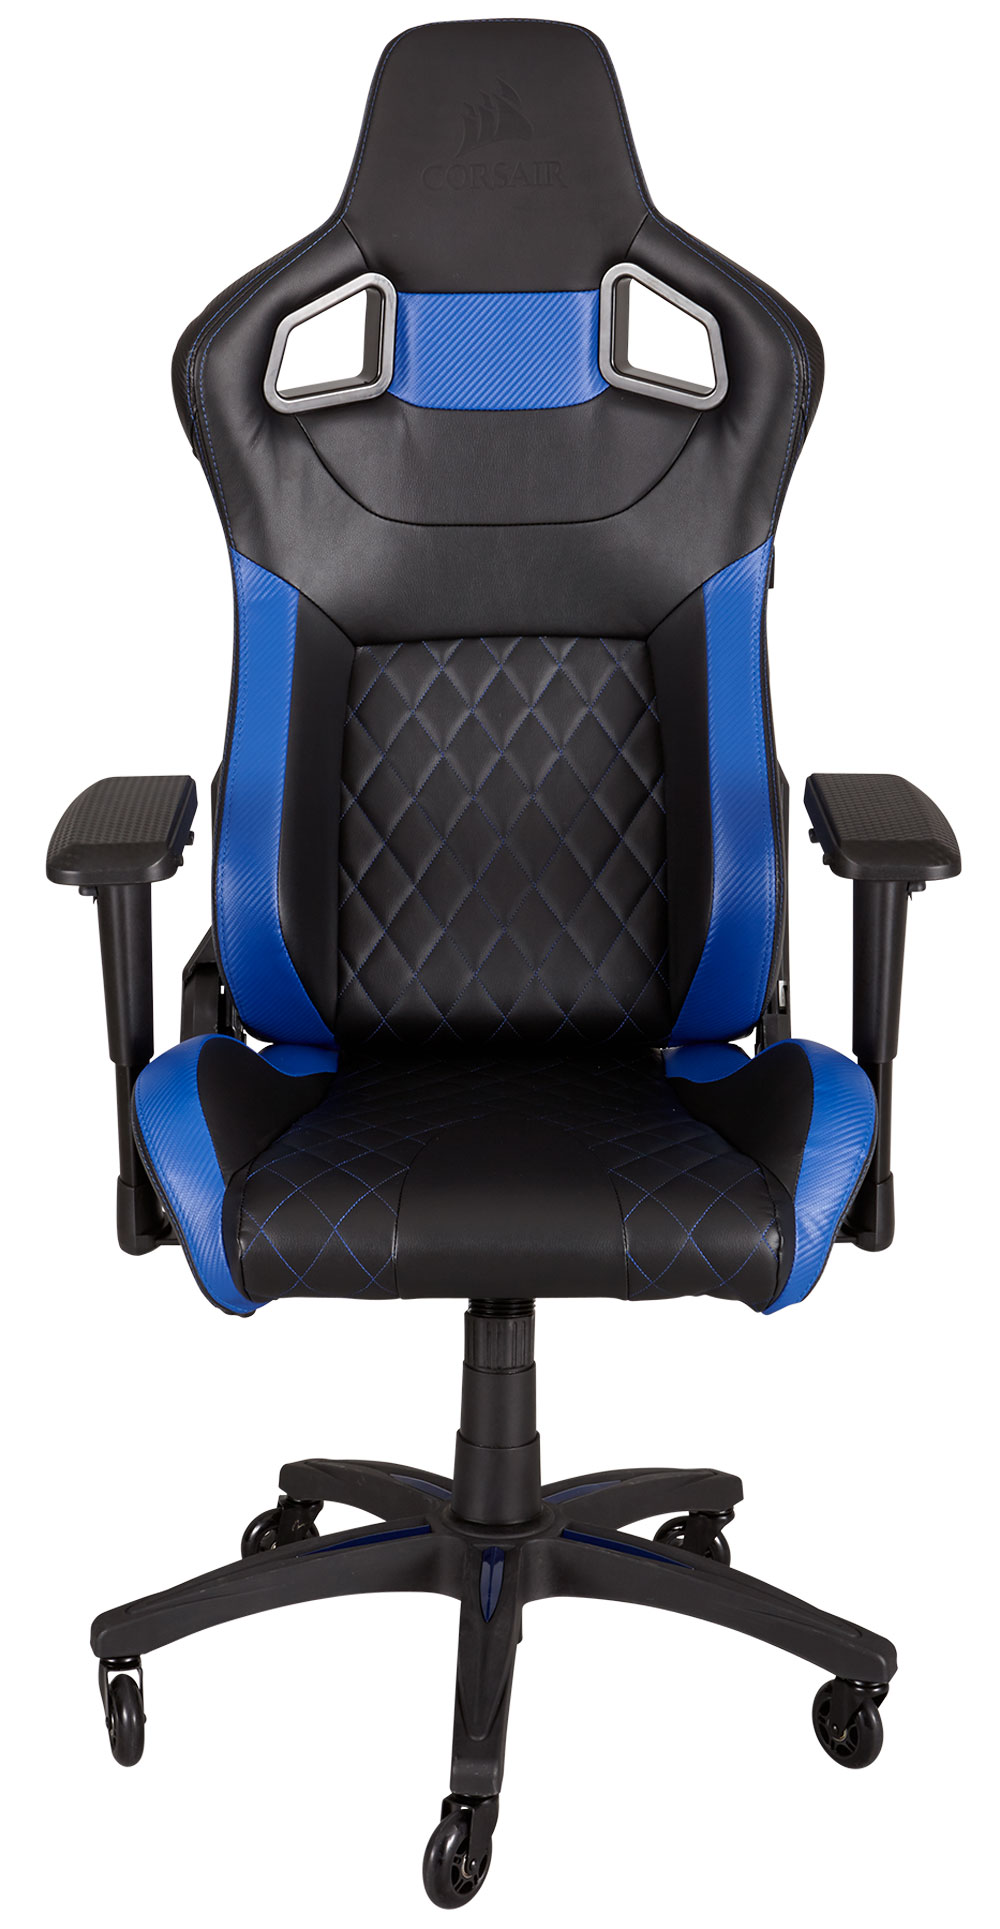 Corsair T1 Race Gaming Chair Black & Blue South Africa